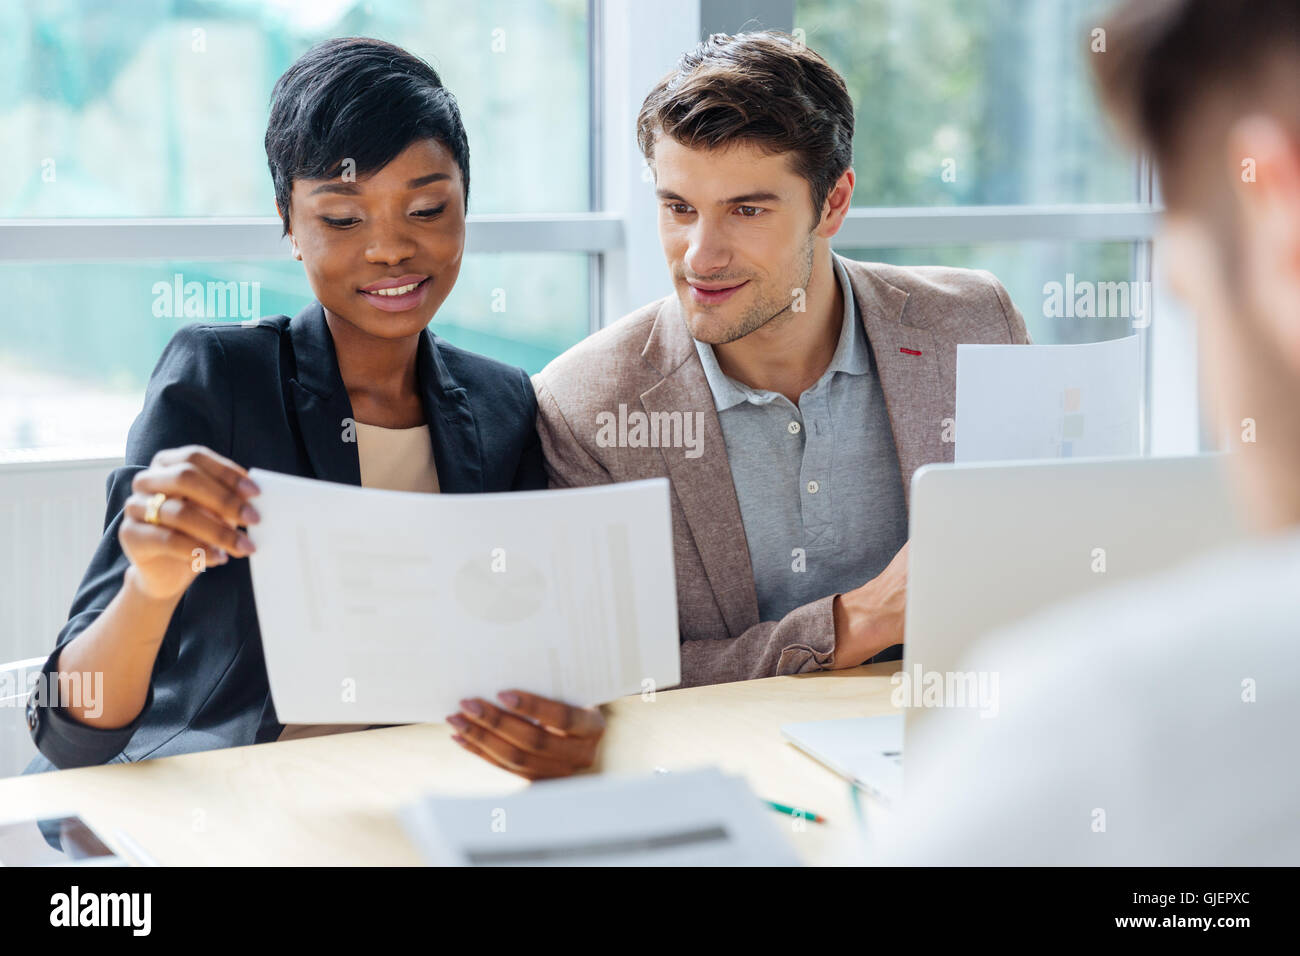 Creative group of young people brainstorming on meeting in office - Stock Image